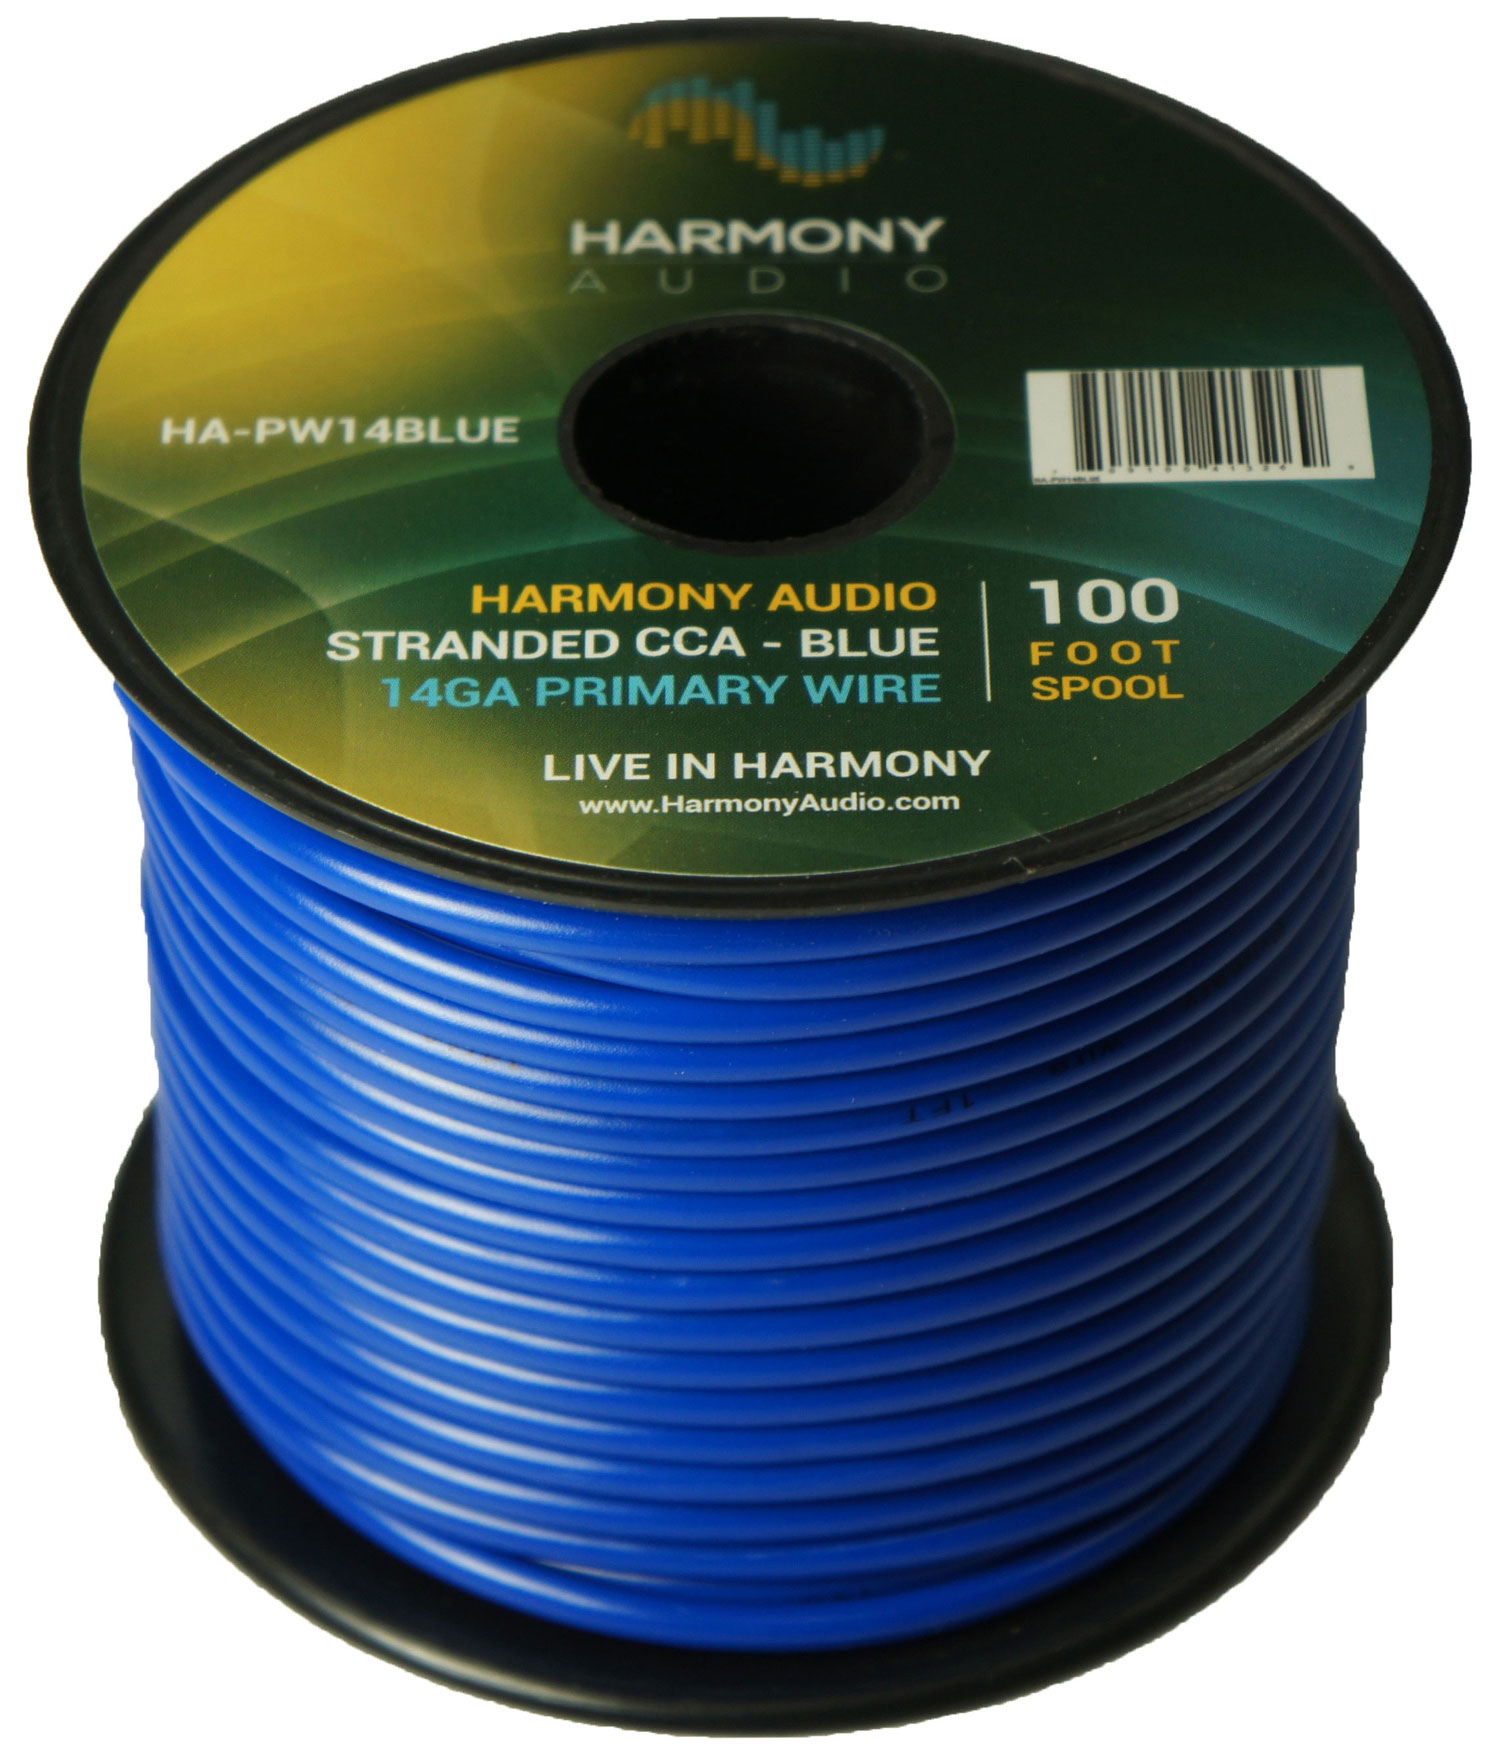 Harmony Audio HA-PW14BLUE Primary Single Conductor 14 Gauge Blue Power or Ground Wire Roll 100 Feet Cable for Car Audio / Trailer / Model Train / Remote